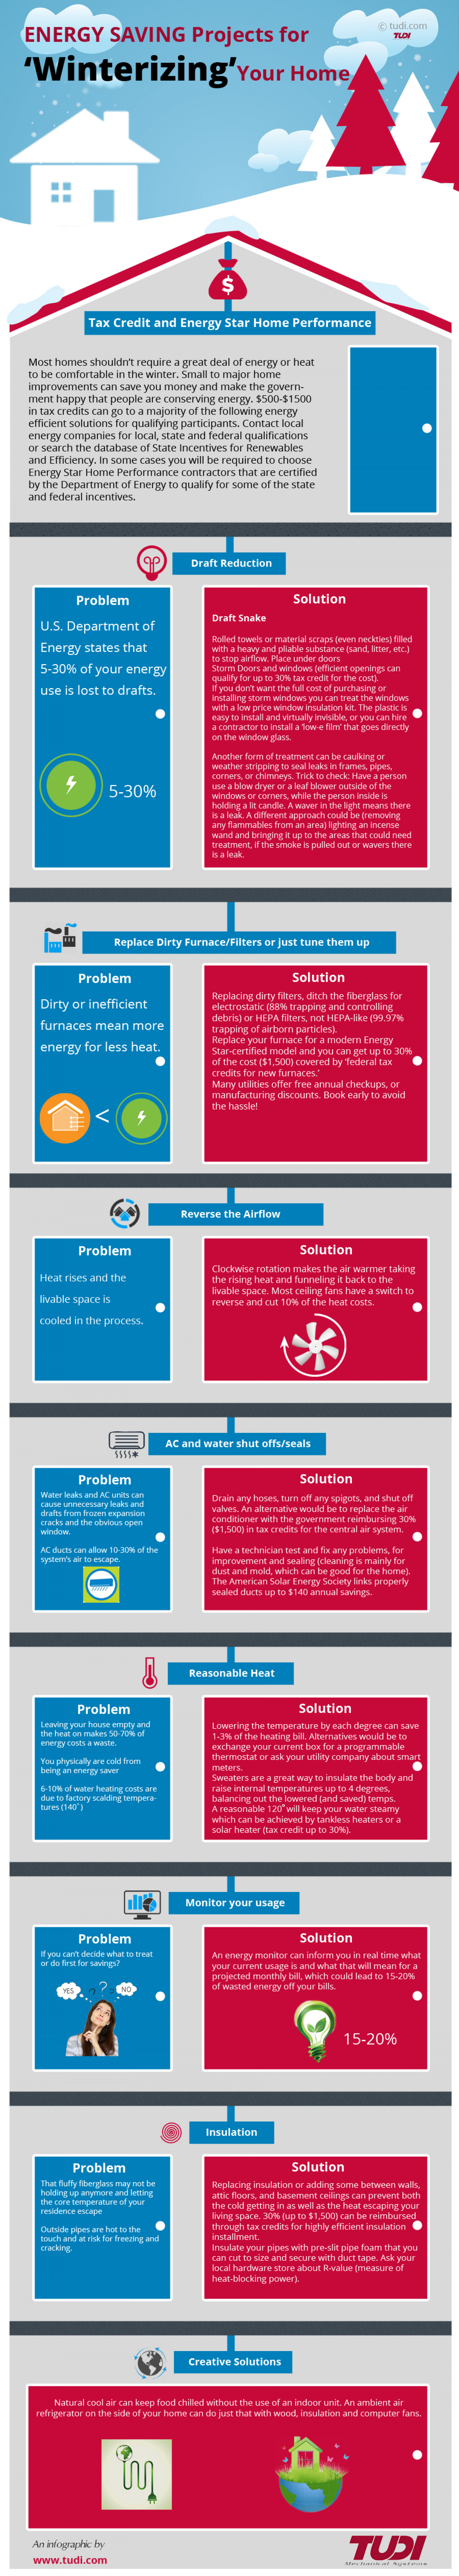 Energy Saving Projects to Winterize Your Home Infographic